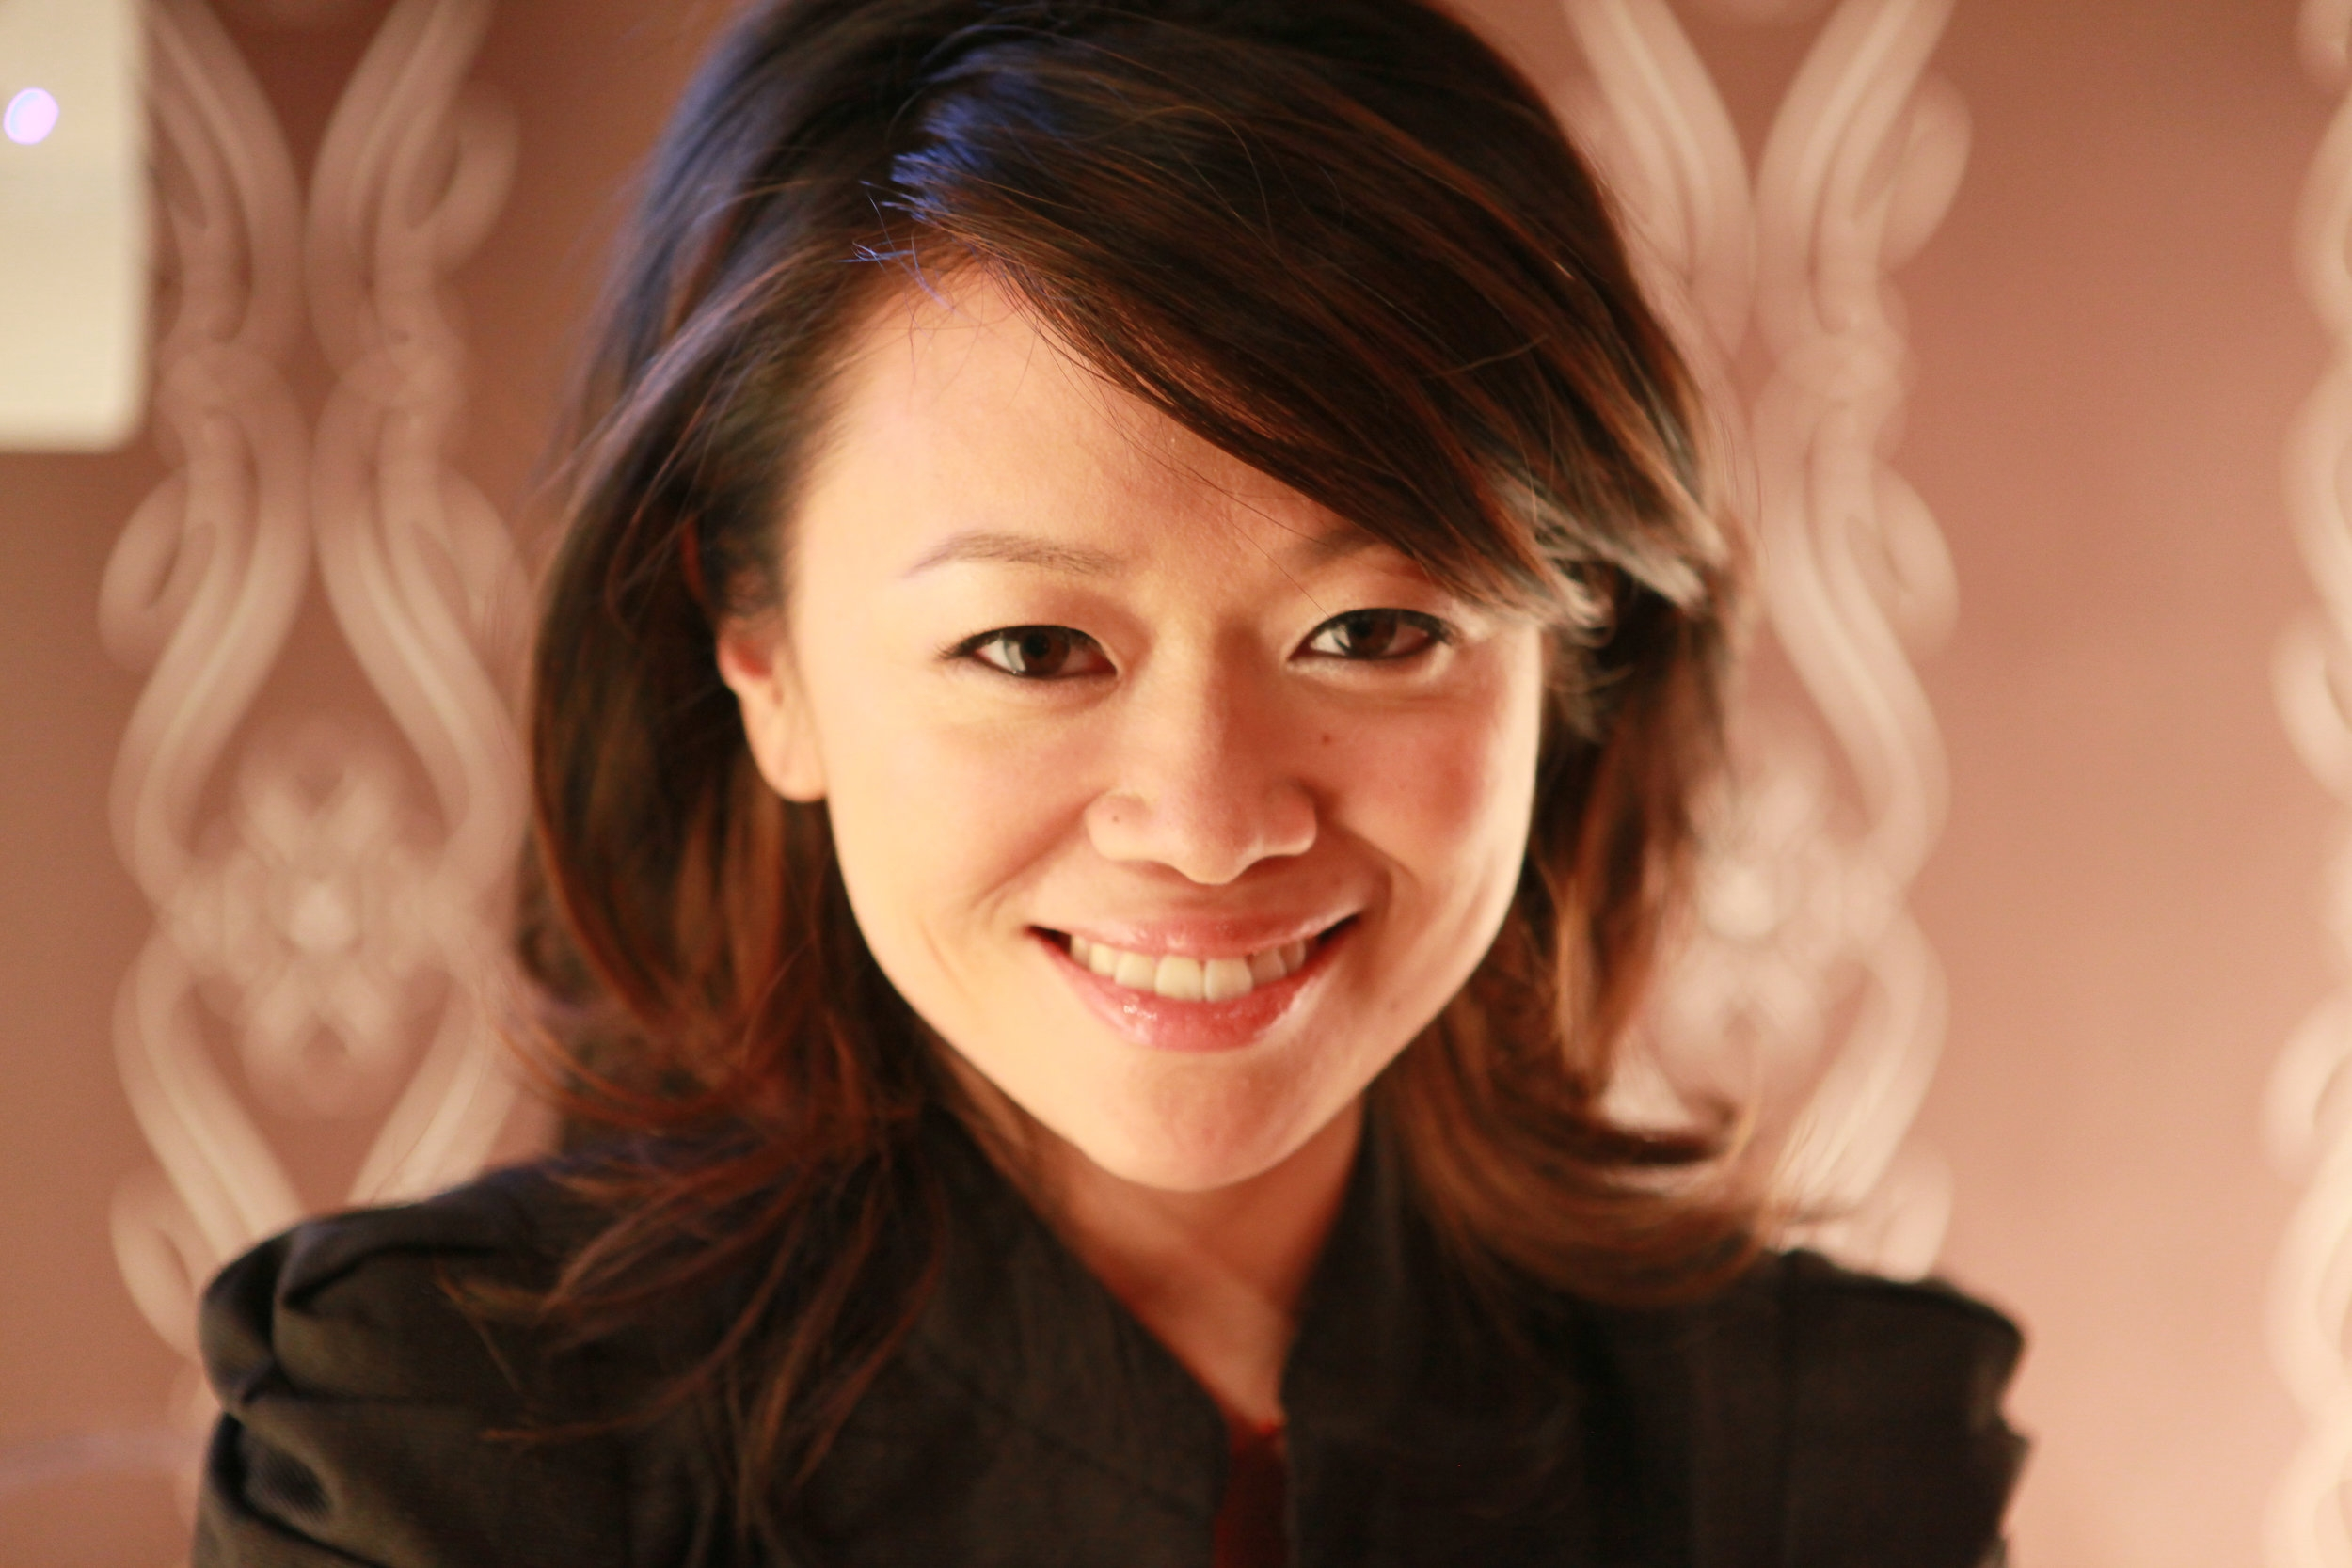 Claudia Chan - CEO and Founder of S.H.E. Globl Media Inc